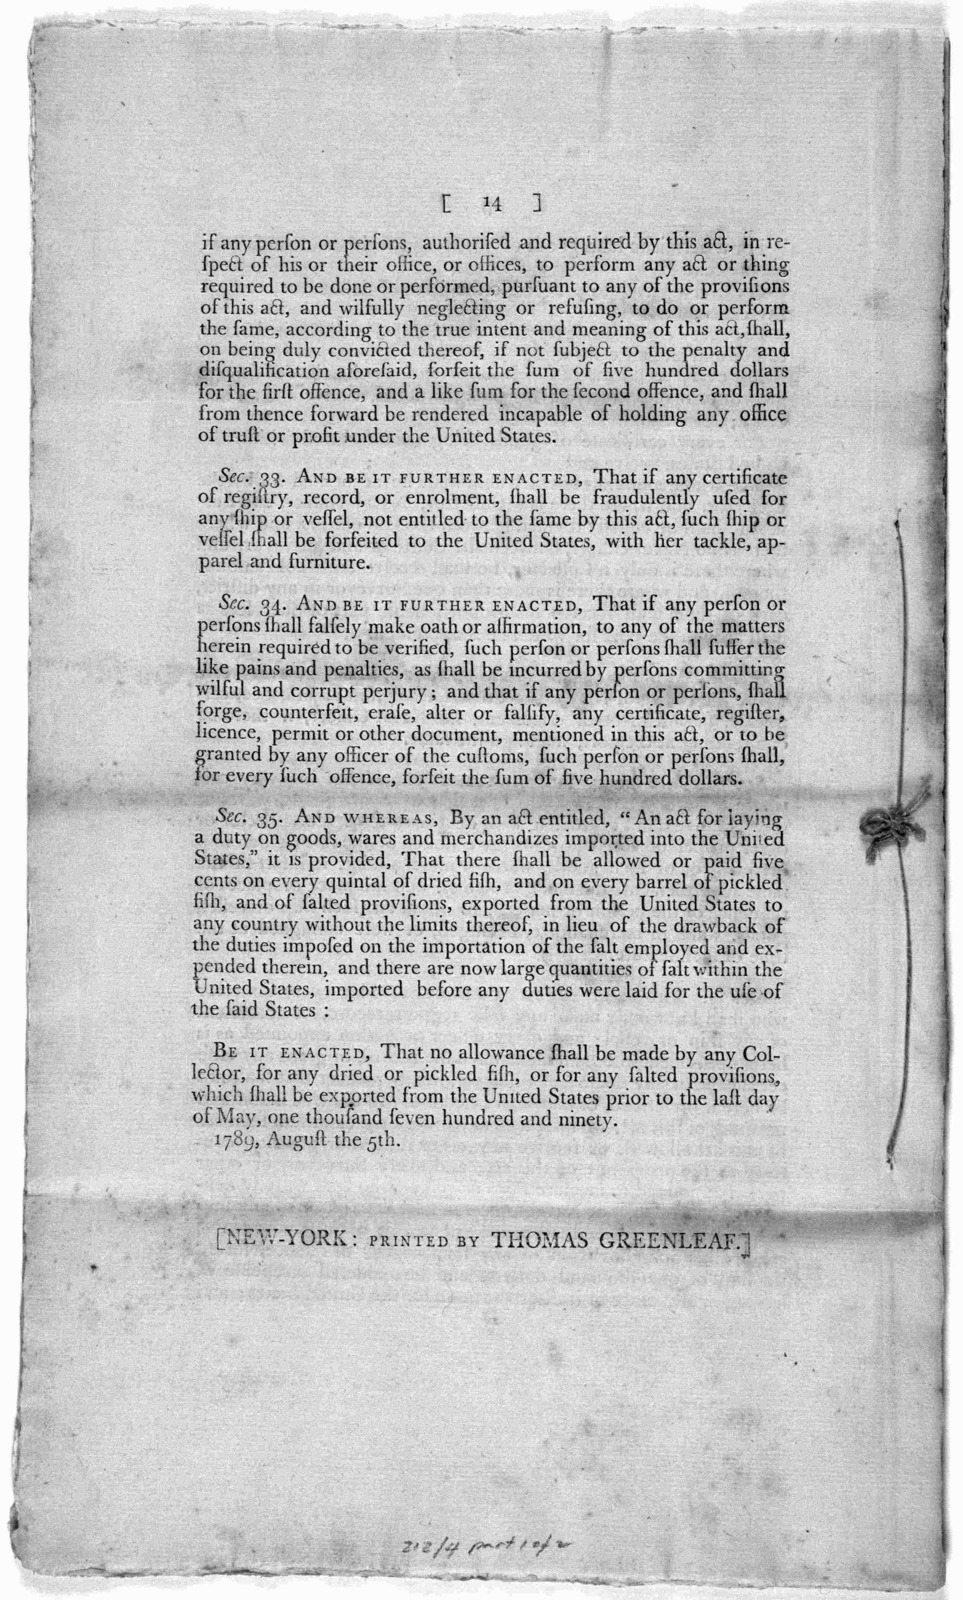 A bill for registering and clearing vessels and regulating the coasting trade, and for other purposes ... New York: Printed by Thomas Greenleaf [1789].